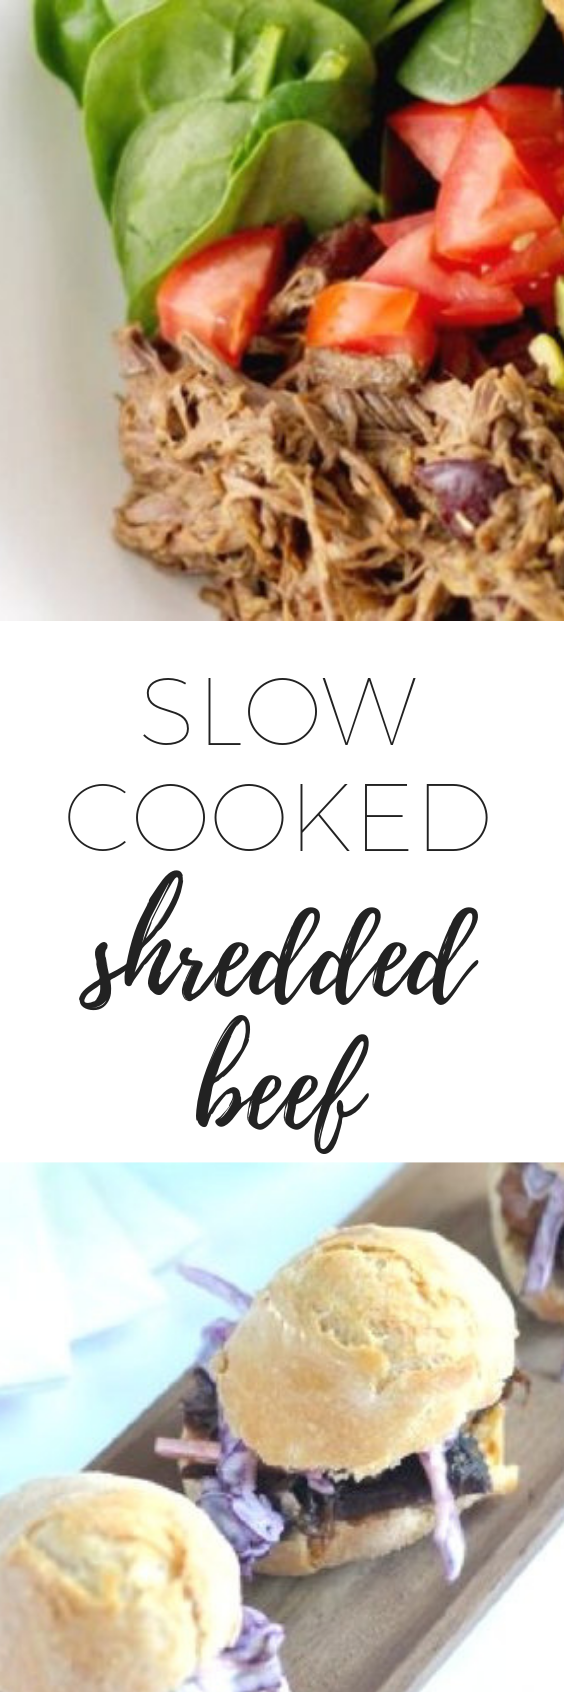 Slow cooked shredded beef